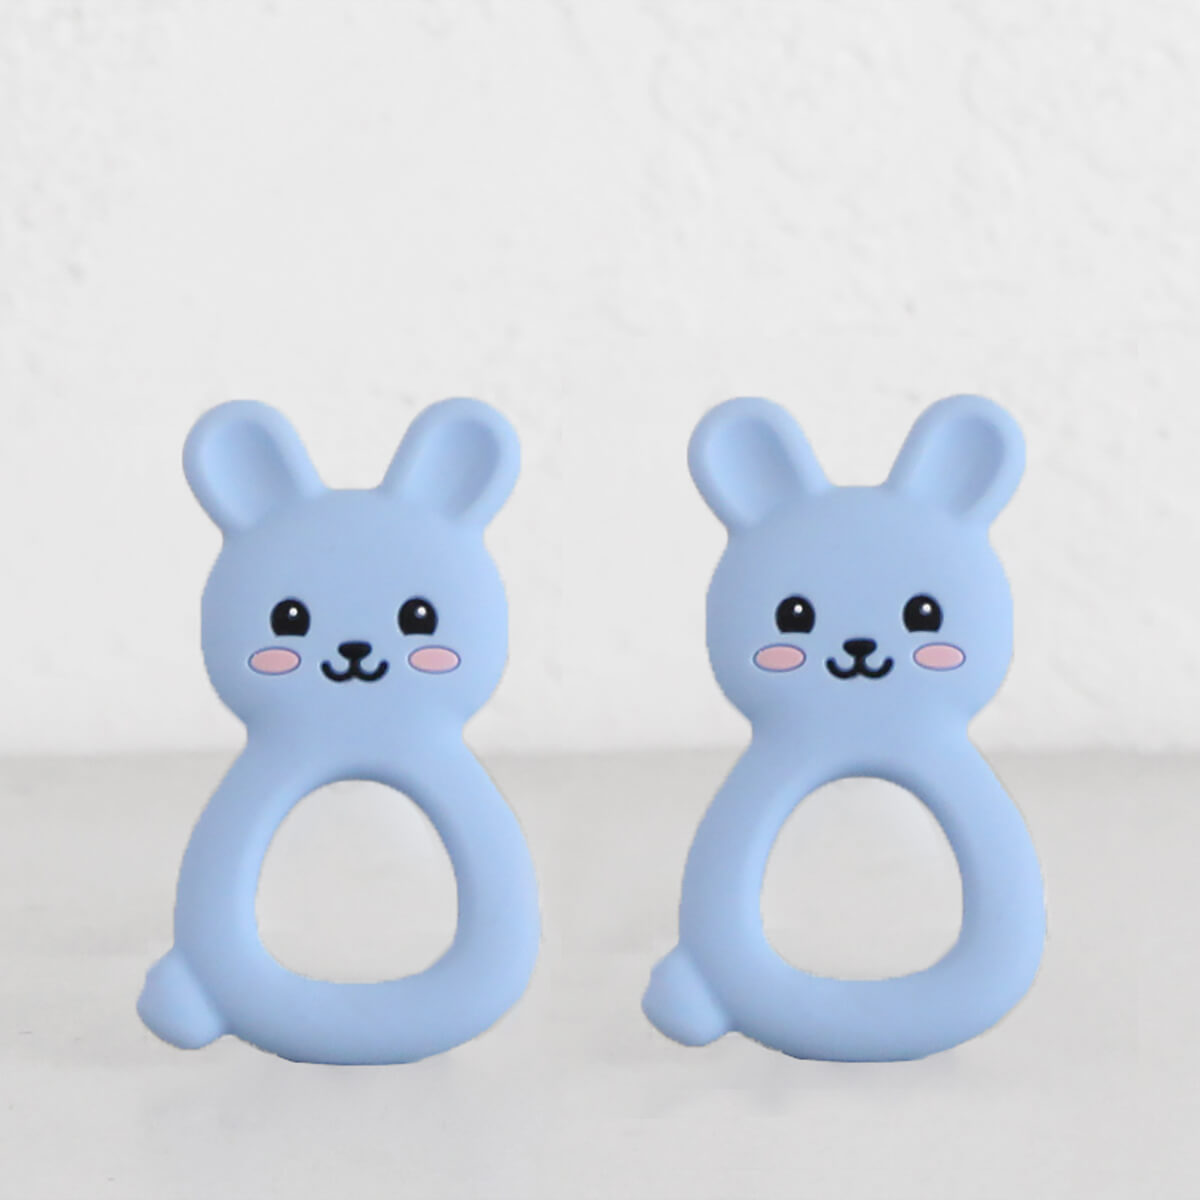 SILIMAMA BUNNY TEETHER | BLUE | BABY TOYS + TEETHERS